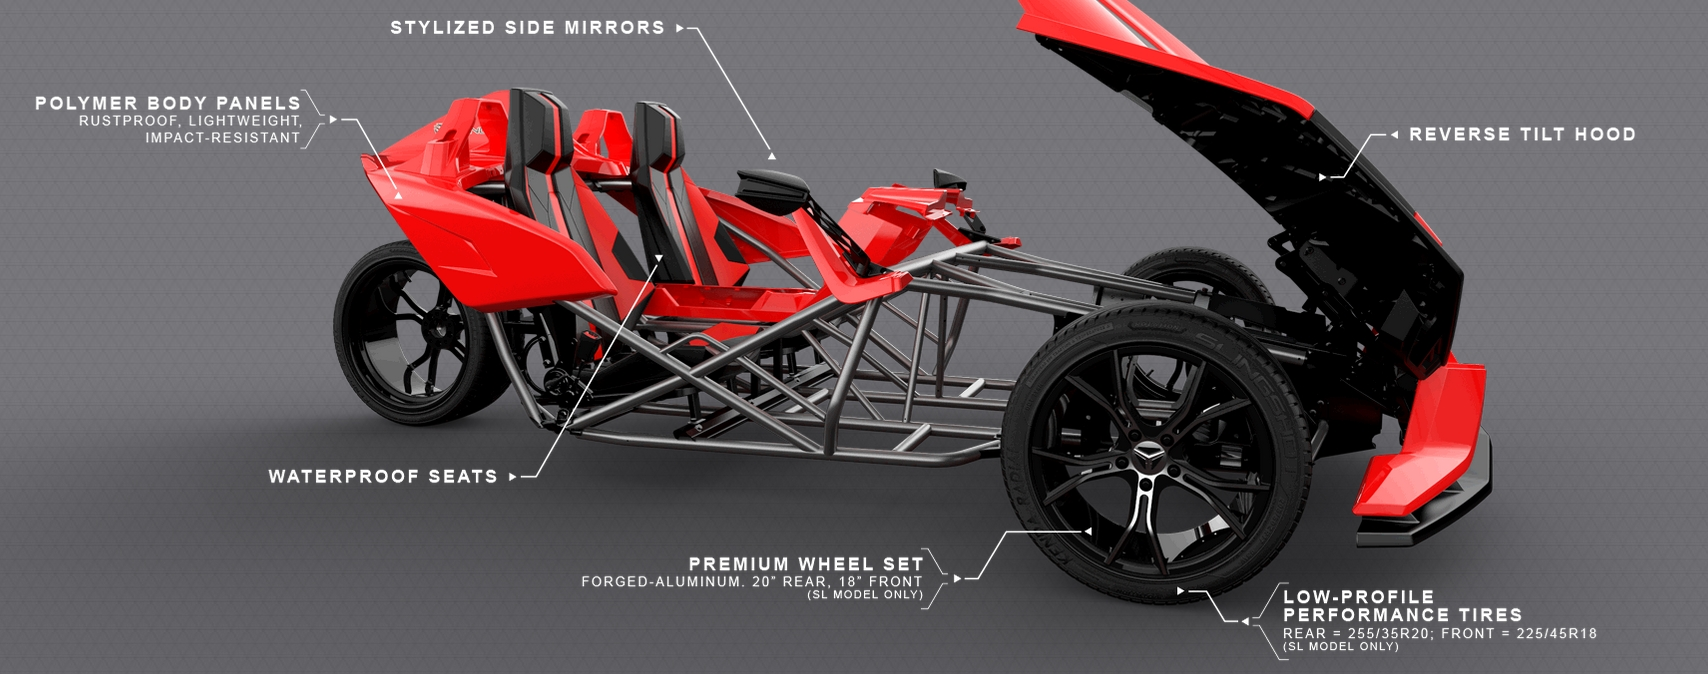 2015 polaris slingshot welcome to the future. Black Bedroom Furniture Sets. Home Design Ideas